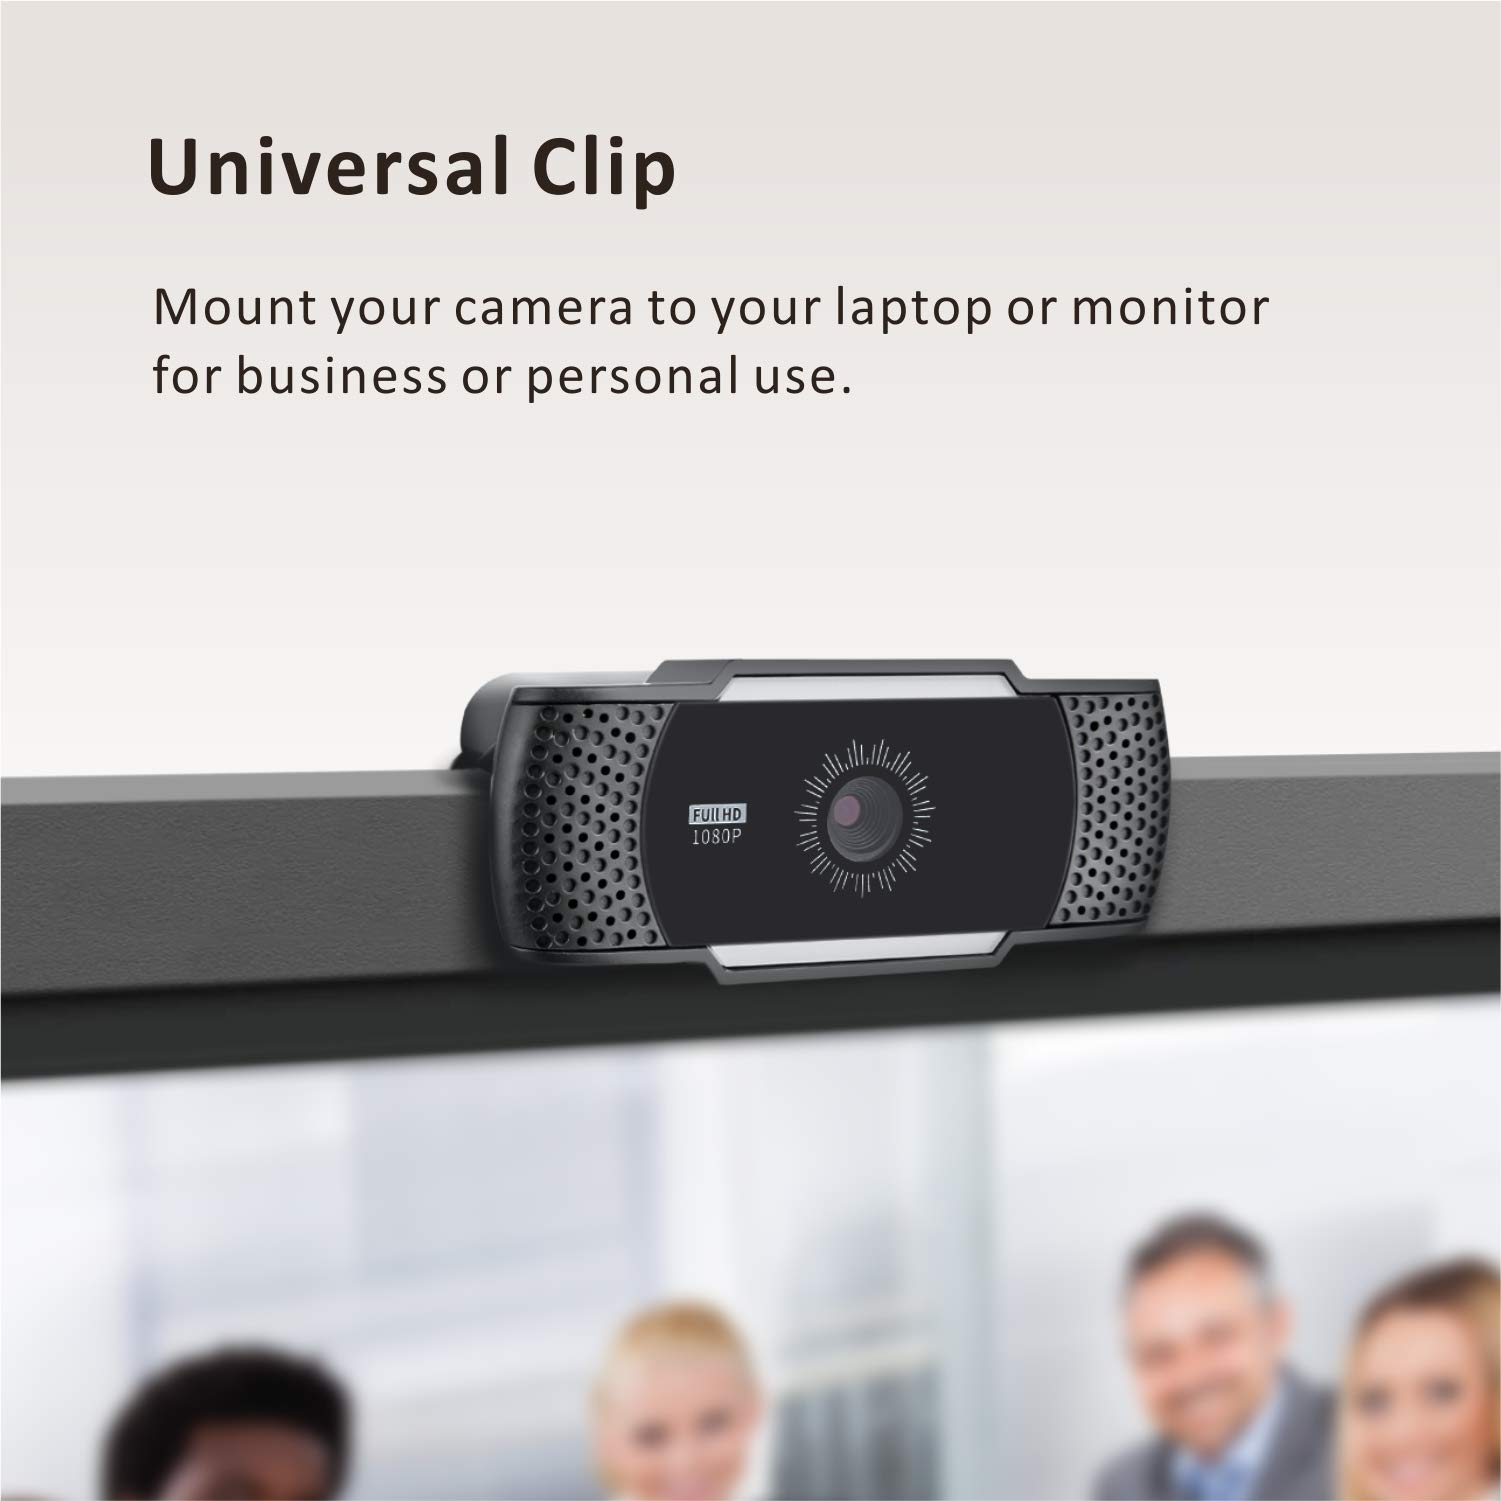 Web Cameras for Computers, Baytion 1080P USB Webcam with Microphone for PC/Laptop/Desktop/Video Calling/Conferencing etc [Full HD 1080P][Noise Reduction Digital Mic][Plug and Play]